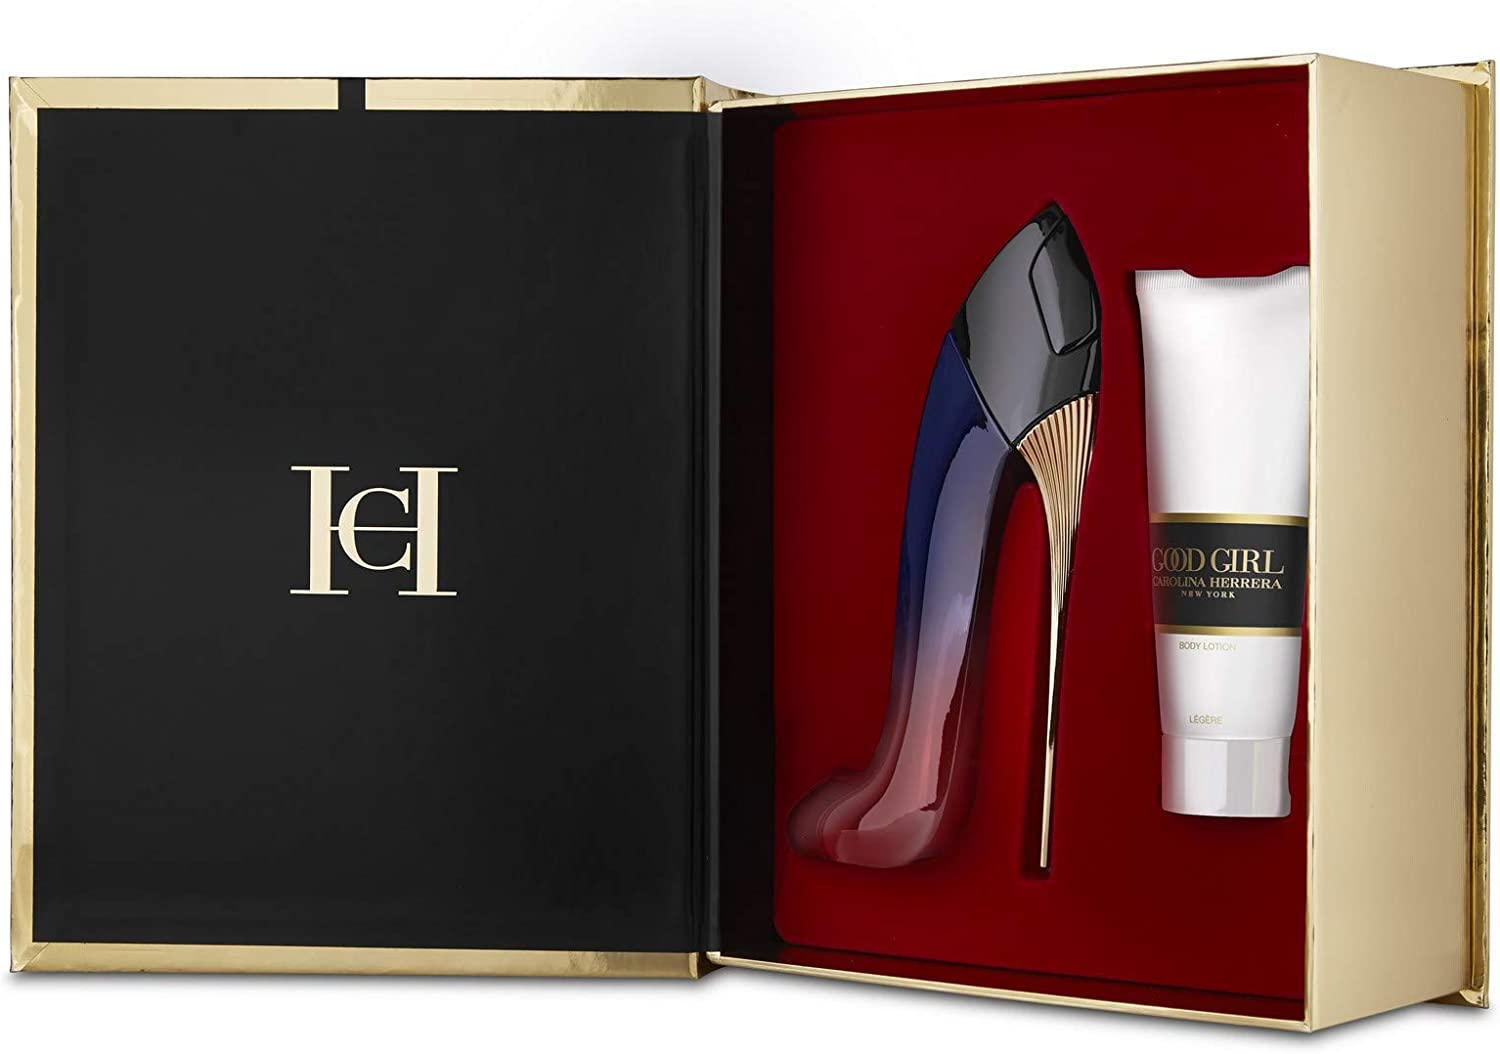 Carolina Herrera Good Girl Legere - 2 piezas: Amazon.es: Belleza